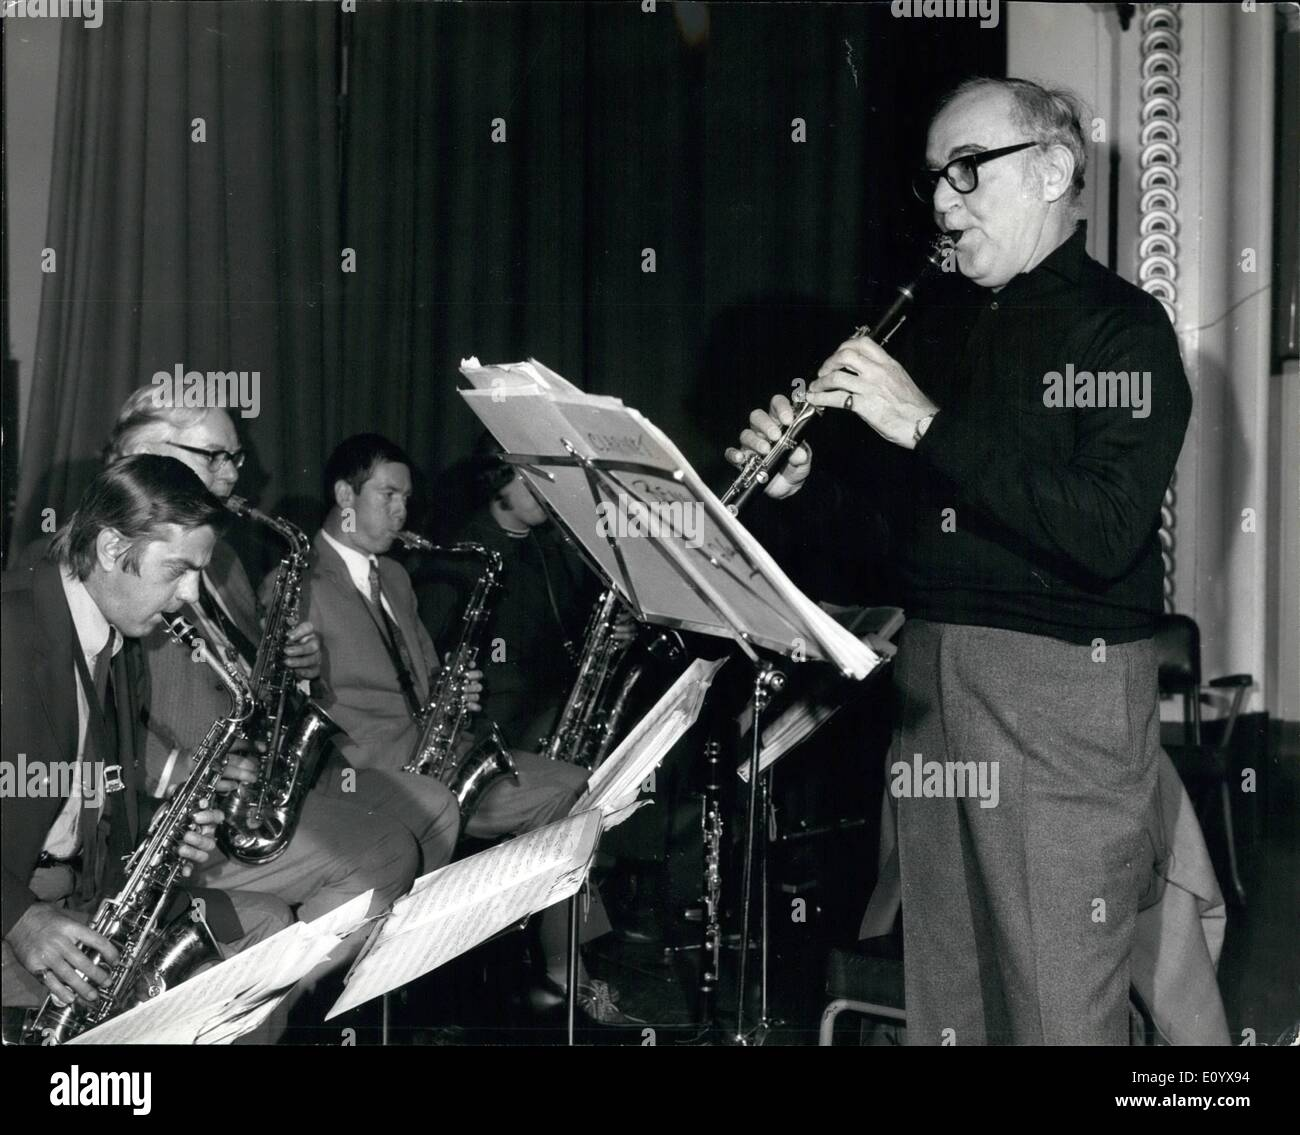 Sep. 09, 1971 - King of Swing Rehearses for Concerts: Benny Goodman, the King of Swing, seen playing his clarinet at St. Panccas town hall yesterday, during rehearsals for two concerts with his British orchestra - at Brighton tonight, and at the Royal Albert Hall on Saturday. - Stock Image